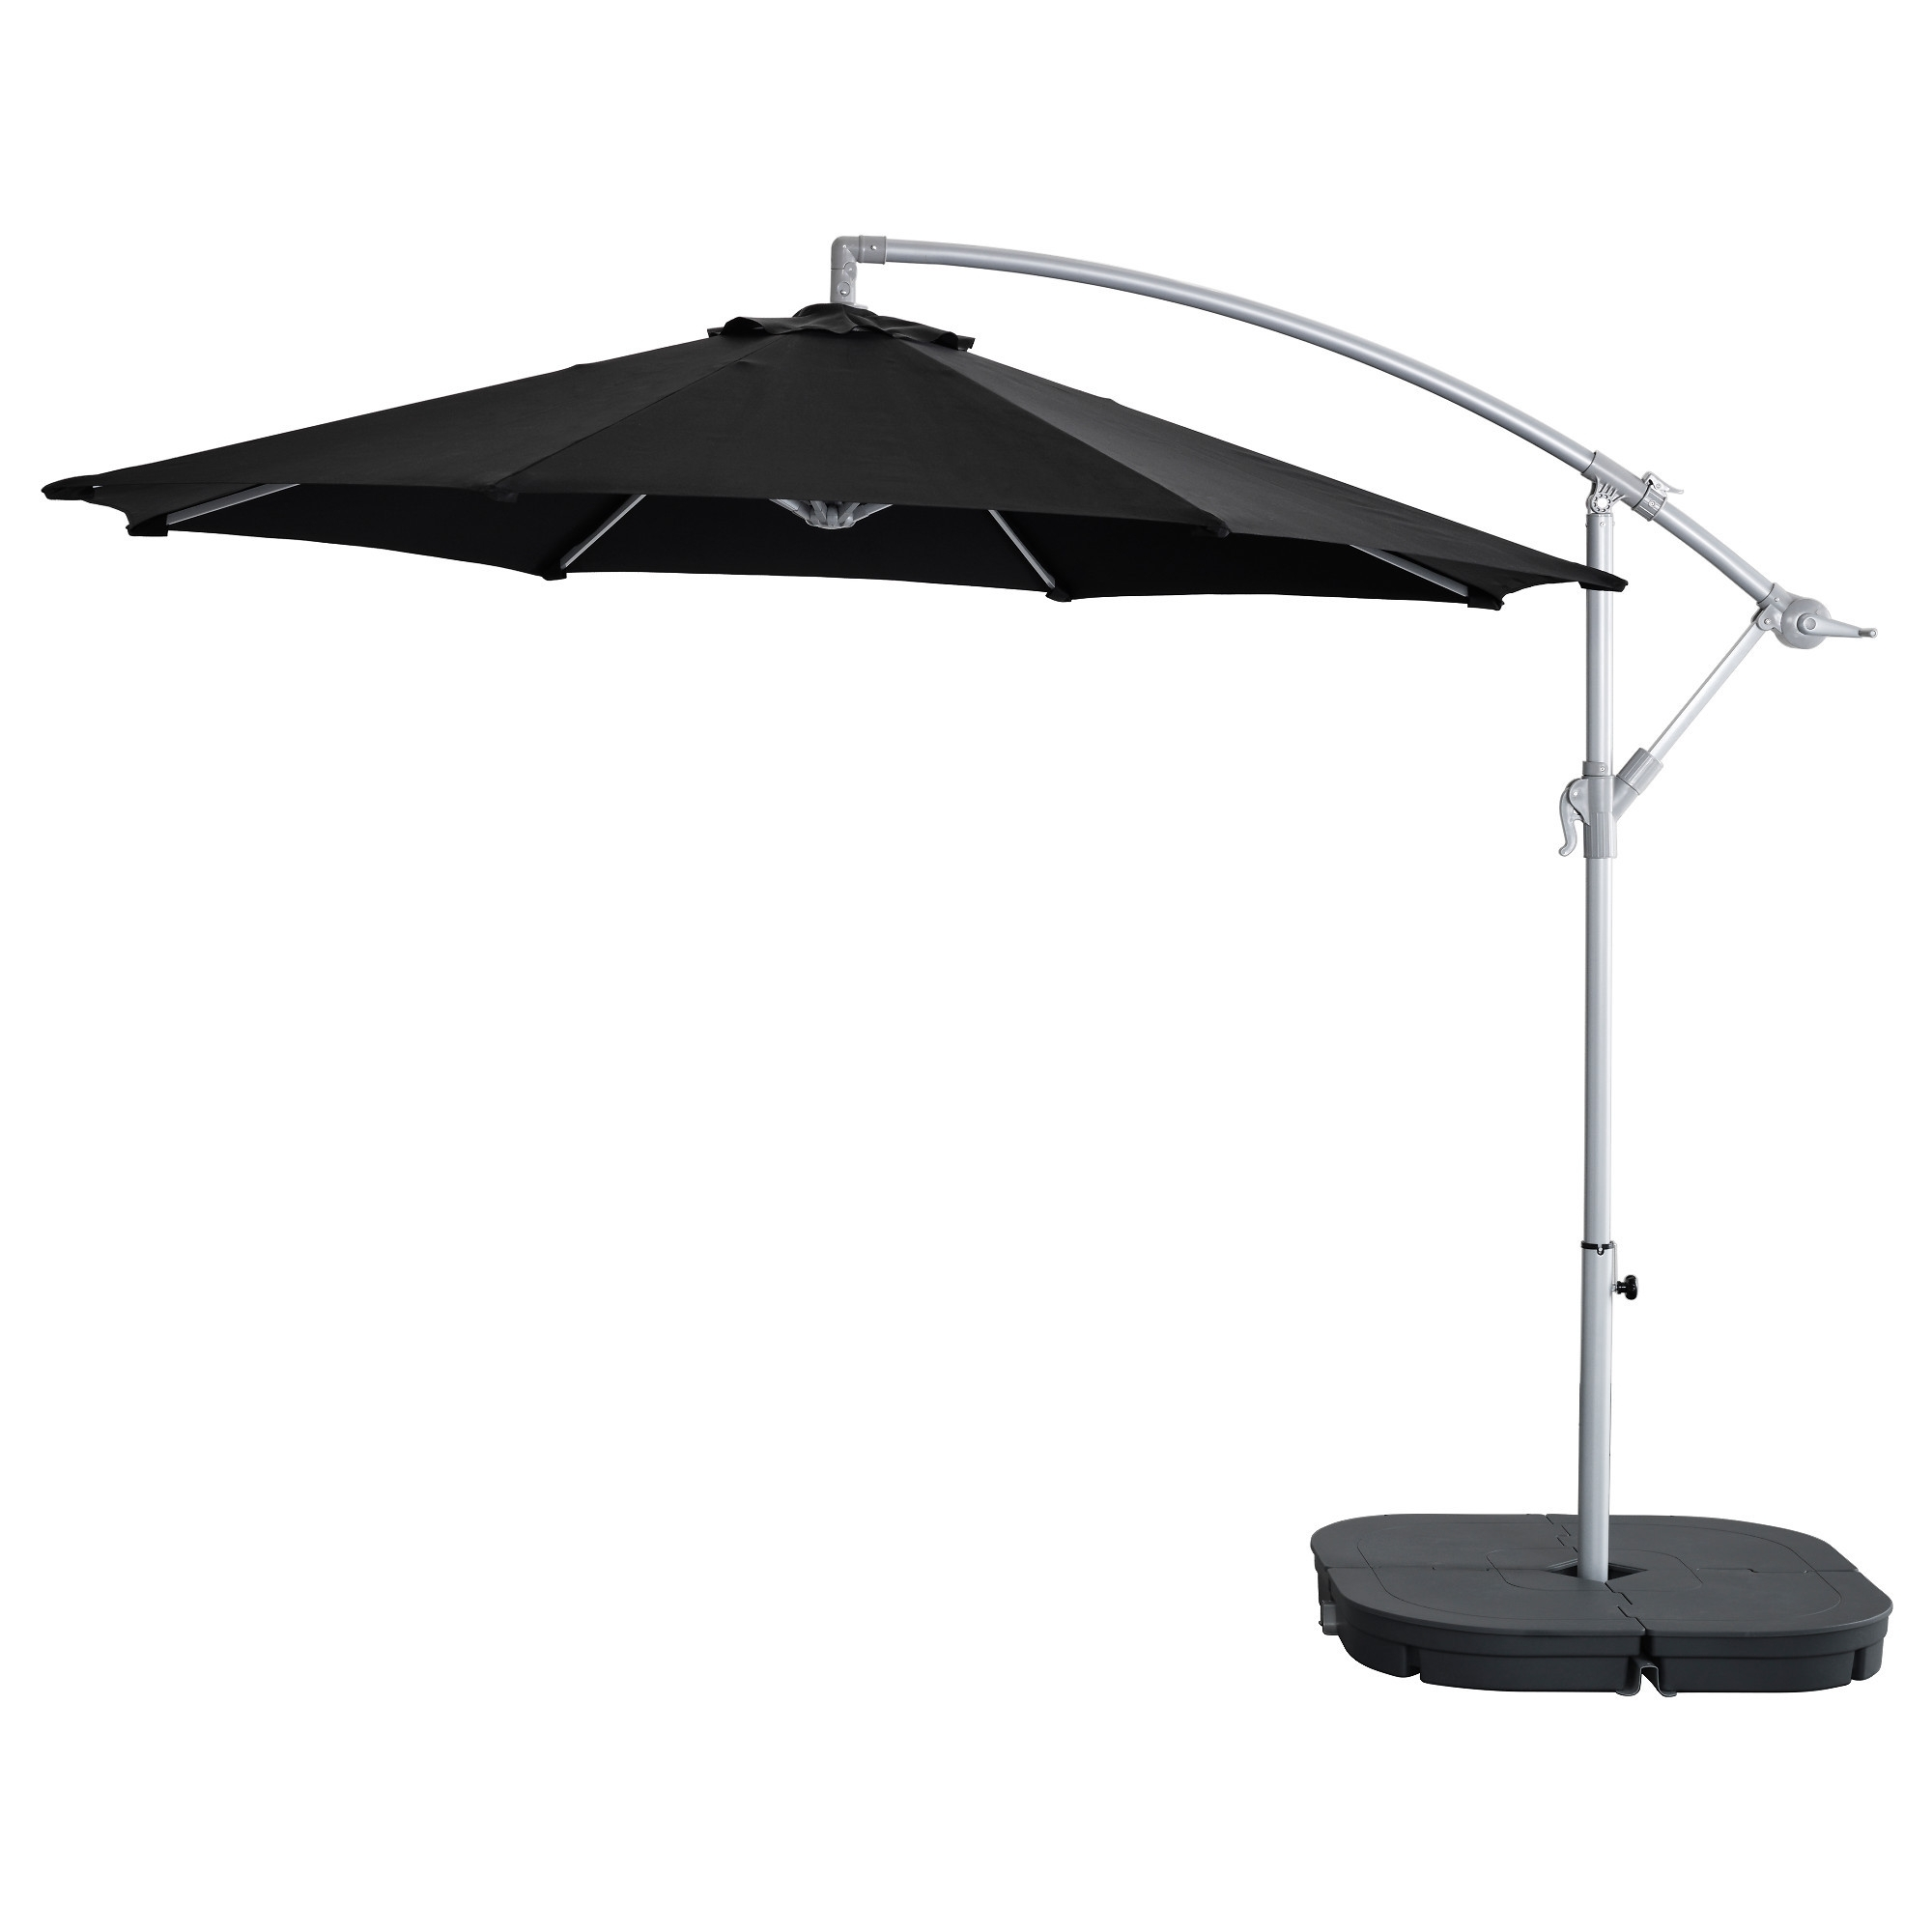 Ikea Patio Umbrellas With Popular Patio Umbrella Side Table New Coffee Tables Small Outdoor Coffee (View 12 of 20)